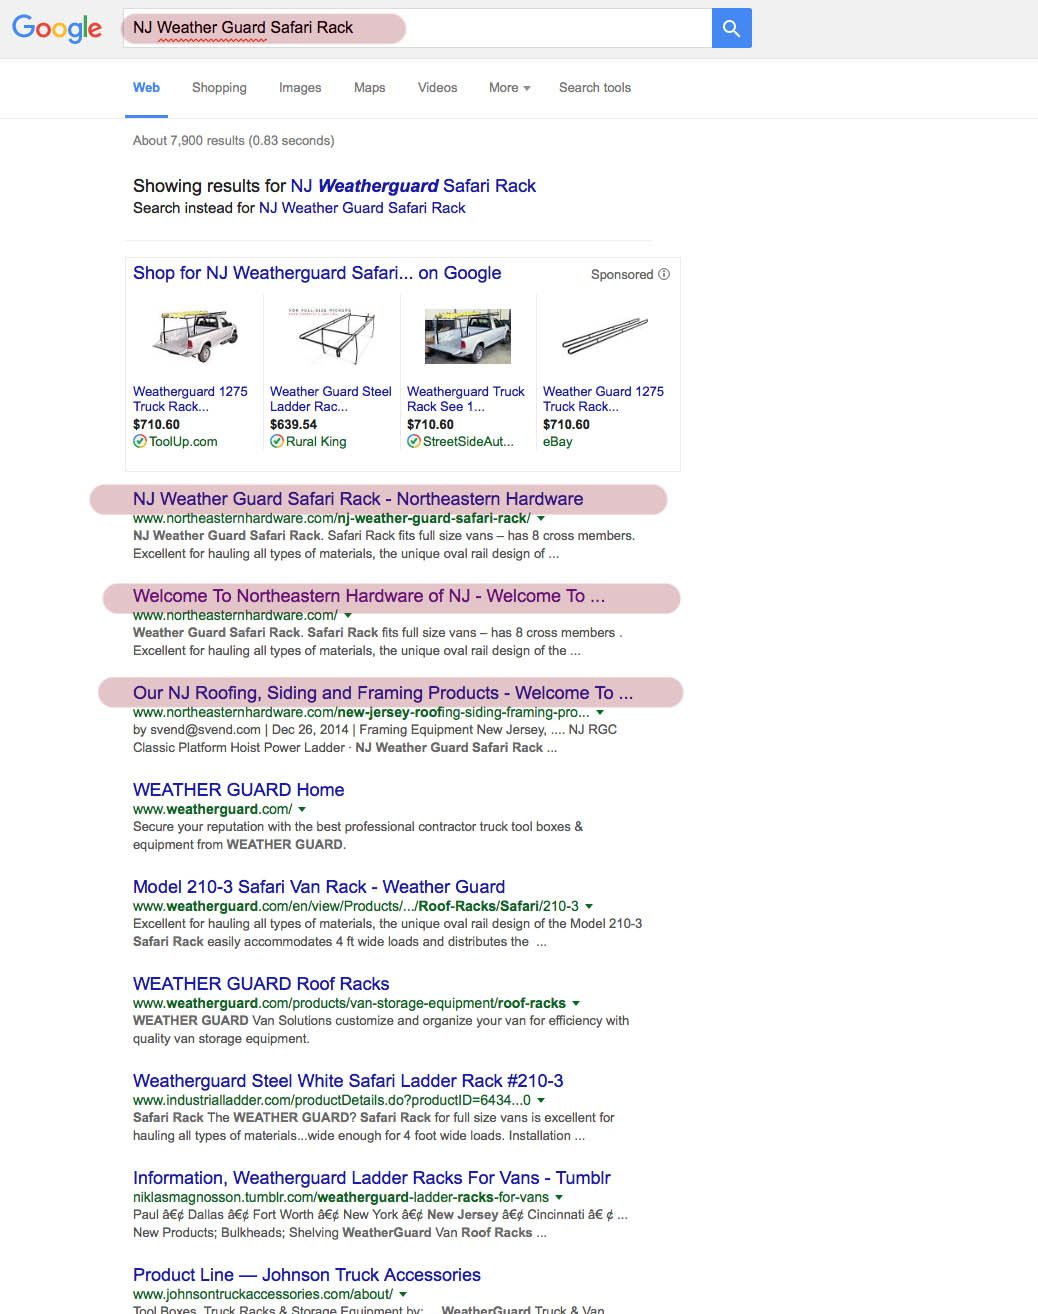 northeastern hardware seo report for nj welcome to design nj weather guard safari rack